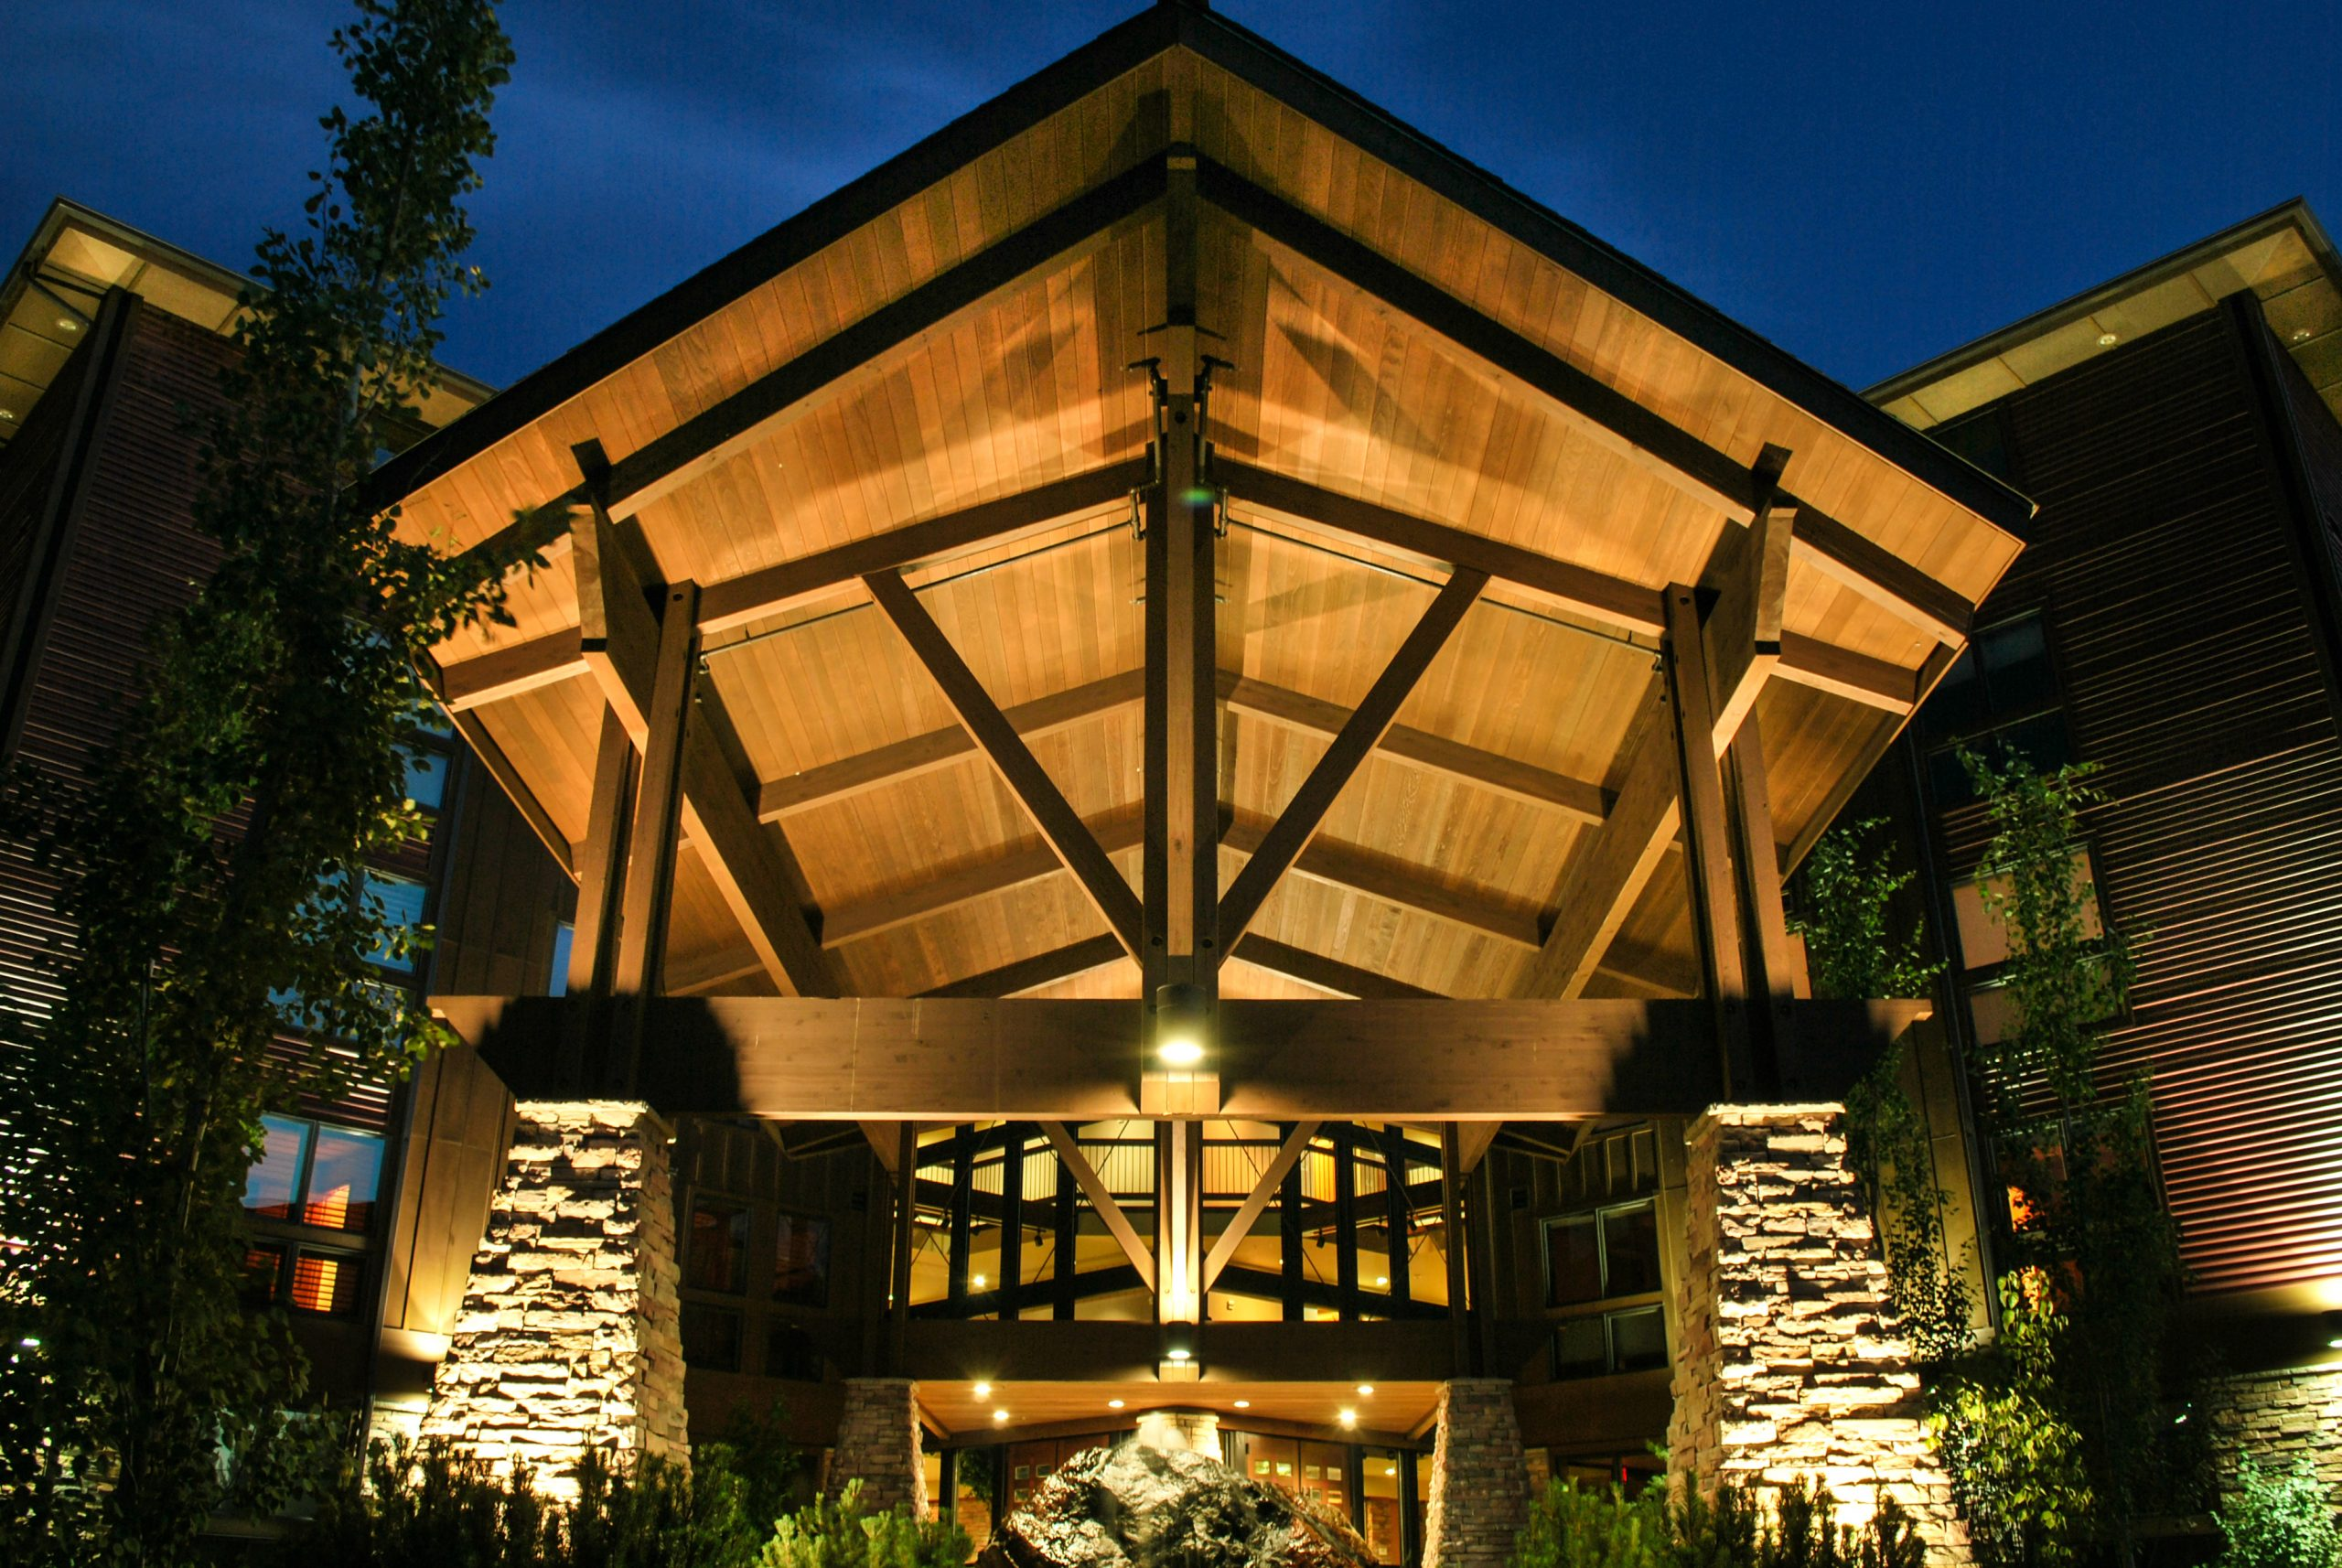 Ridgepointe is a luxury condo project located in the Sanders Beach neighborhood in Coeur d'Alene that features exposed beams, stonework, and a five-story entry atrium.